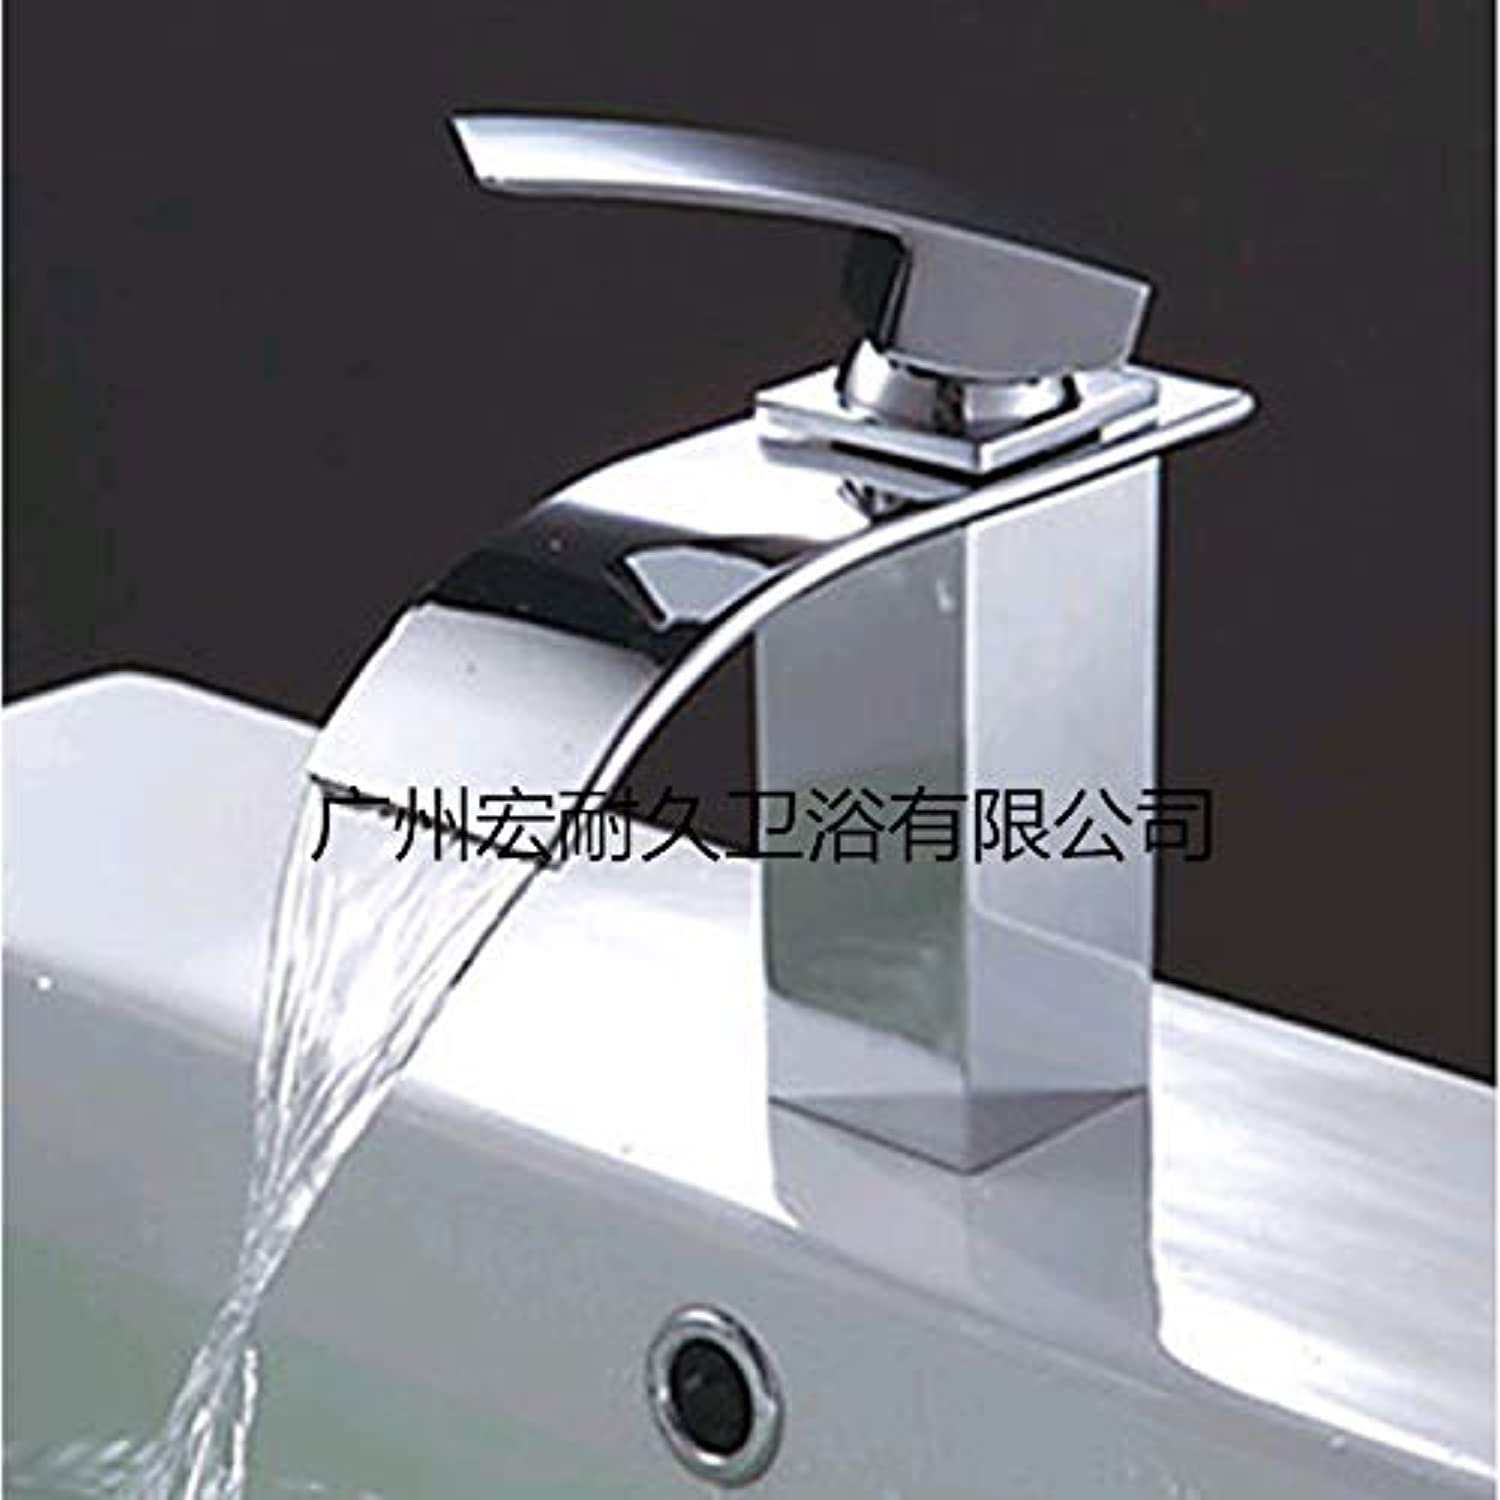 redOOY Diy???Bathroom Sink Taps Taps Faucet Hot and Cold Faucet Copper Waterfall Washbasin Basin Faucet Bathroom Cabinet Faucet Single Hole Hot and Cold Faucet